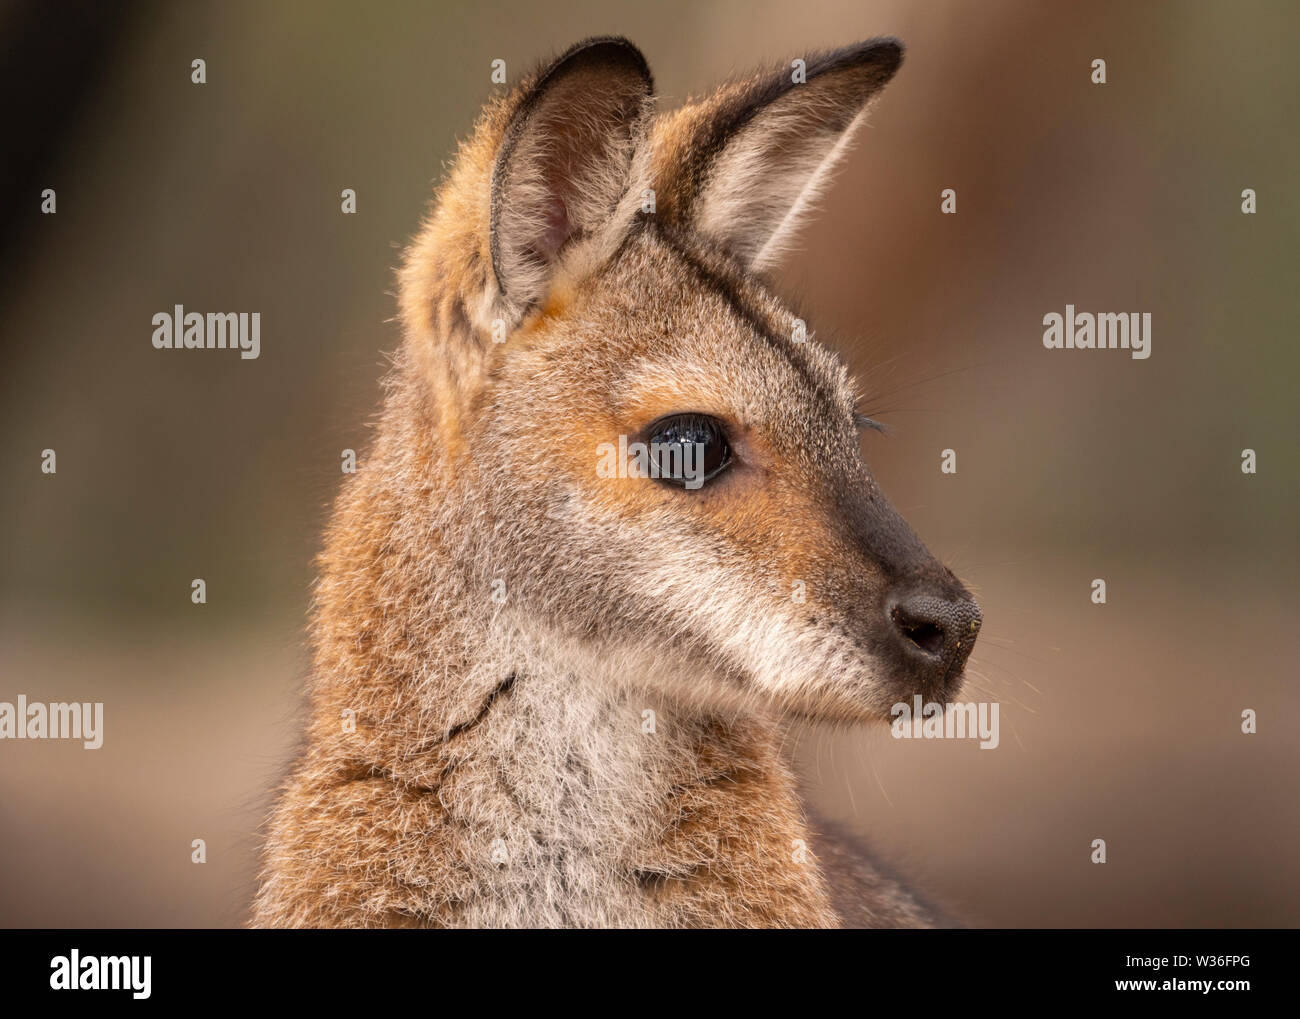 Red-necked Wallaby, Macropus rufogriseus, alert to danger in bushland near Dubbo in Central West of New South Wales, Australia Stock Photo